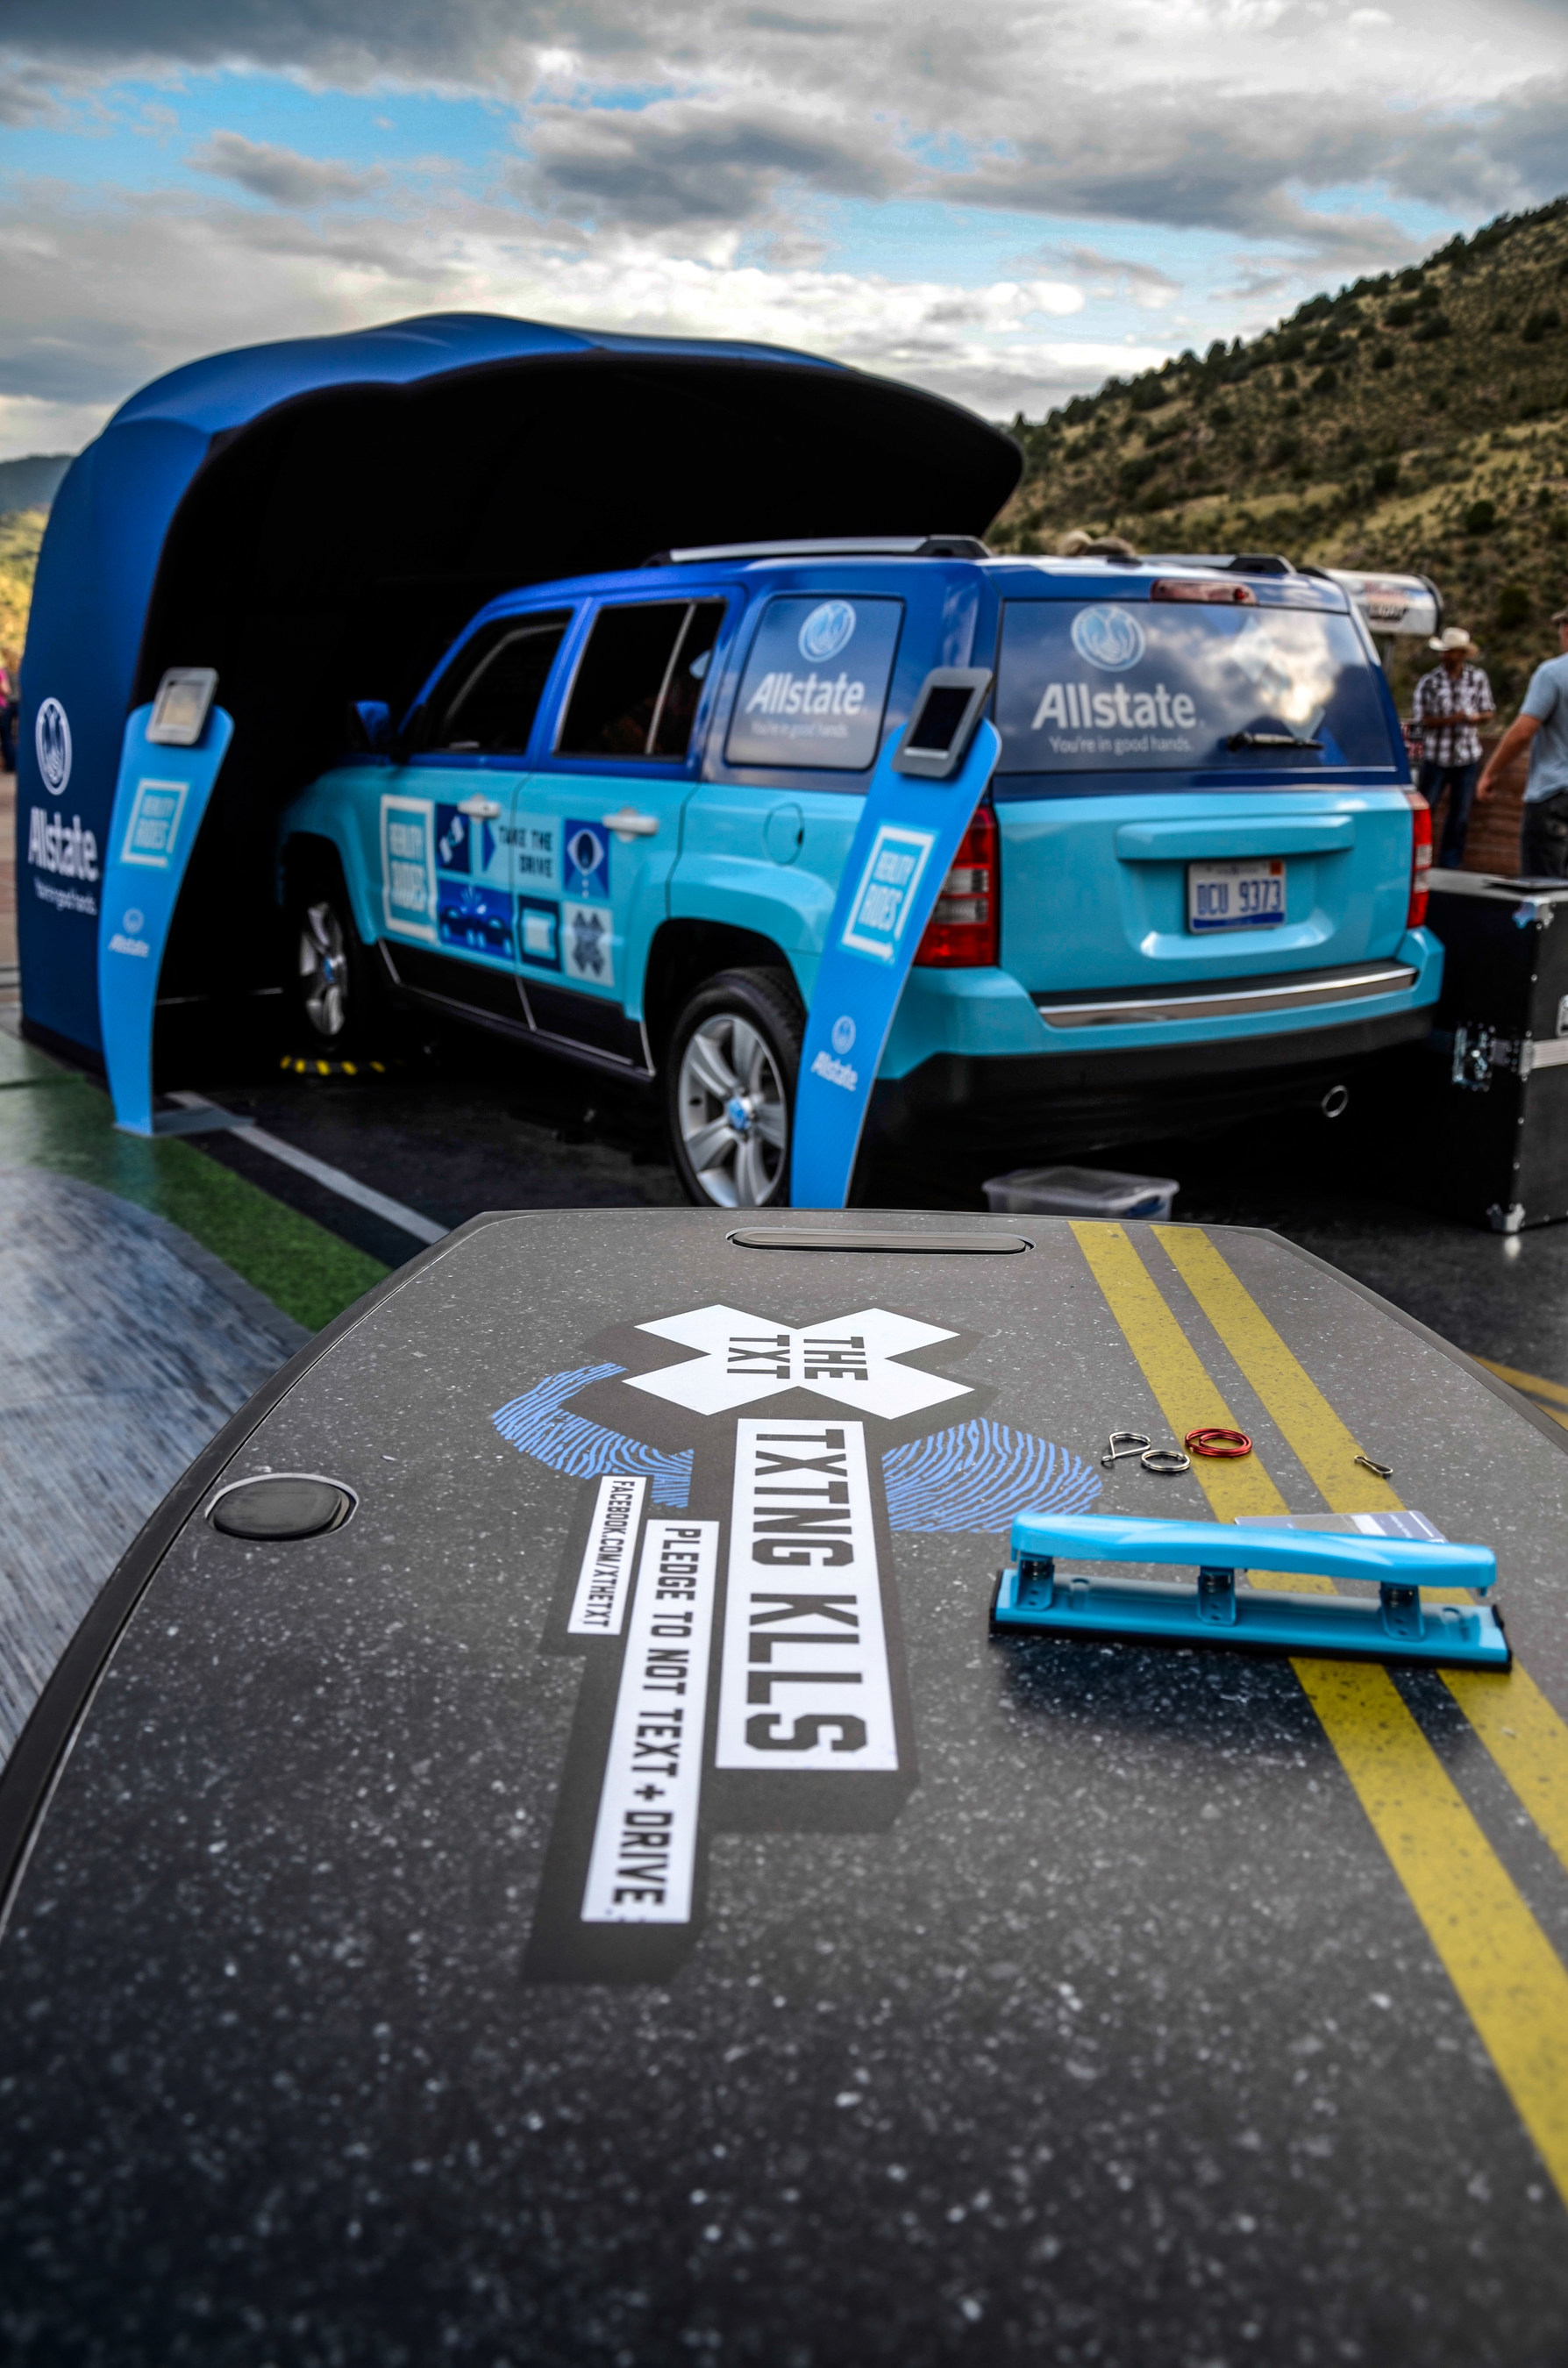 Reality Rides is a real - but stationary - vehicle equipped with virtual reality technology. It aims to educate participants on the dangers of distracted driving in order to make America's roads safer.